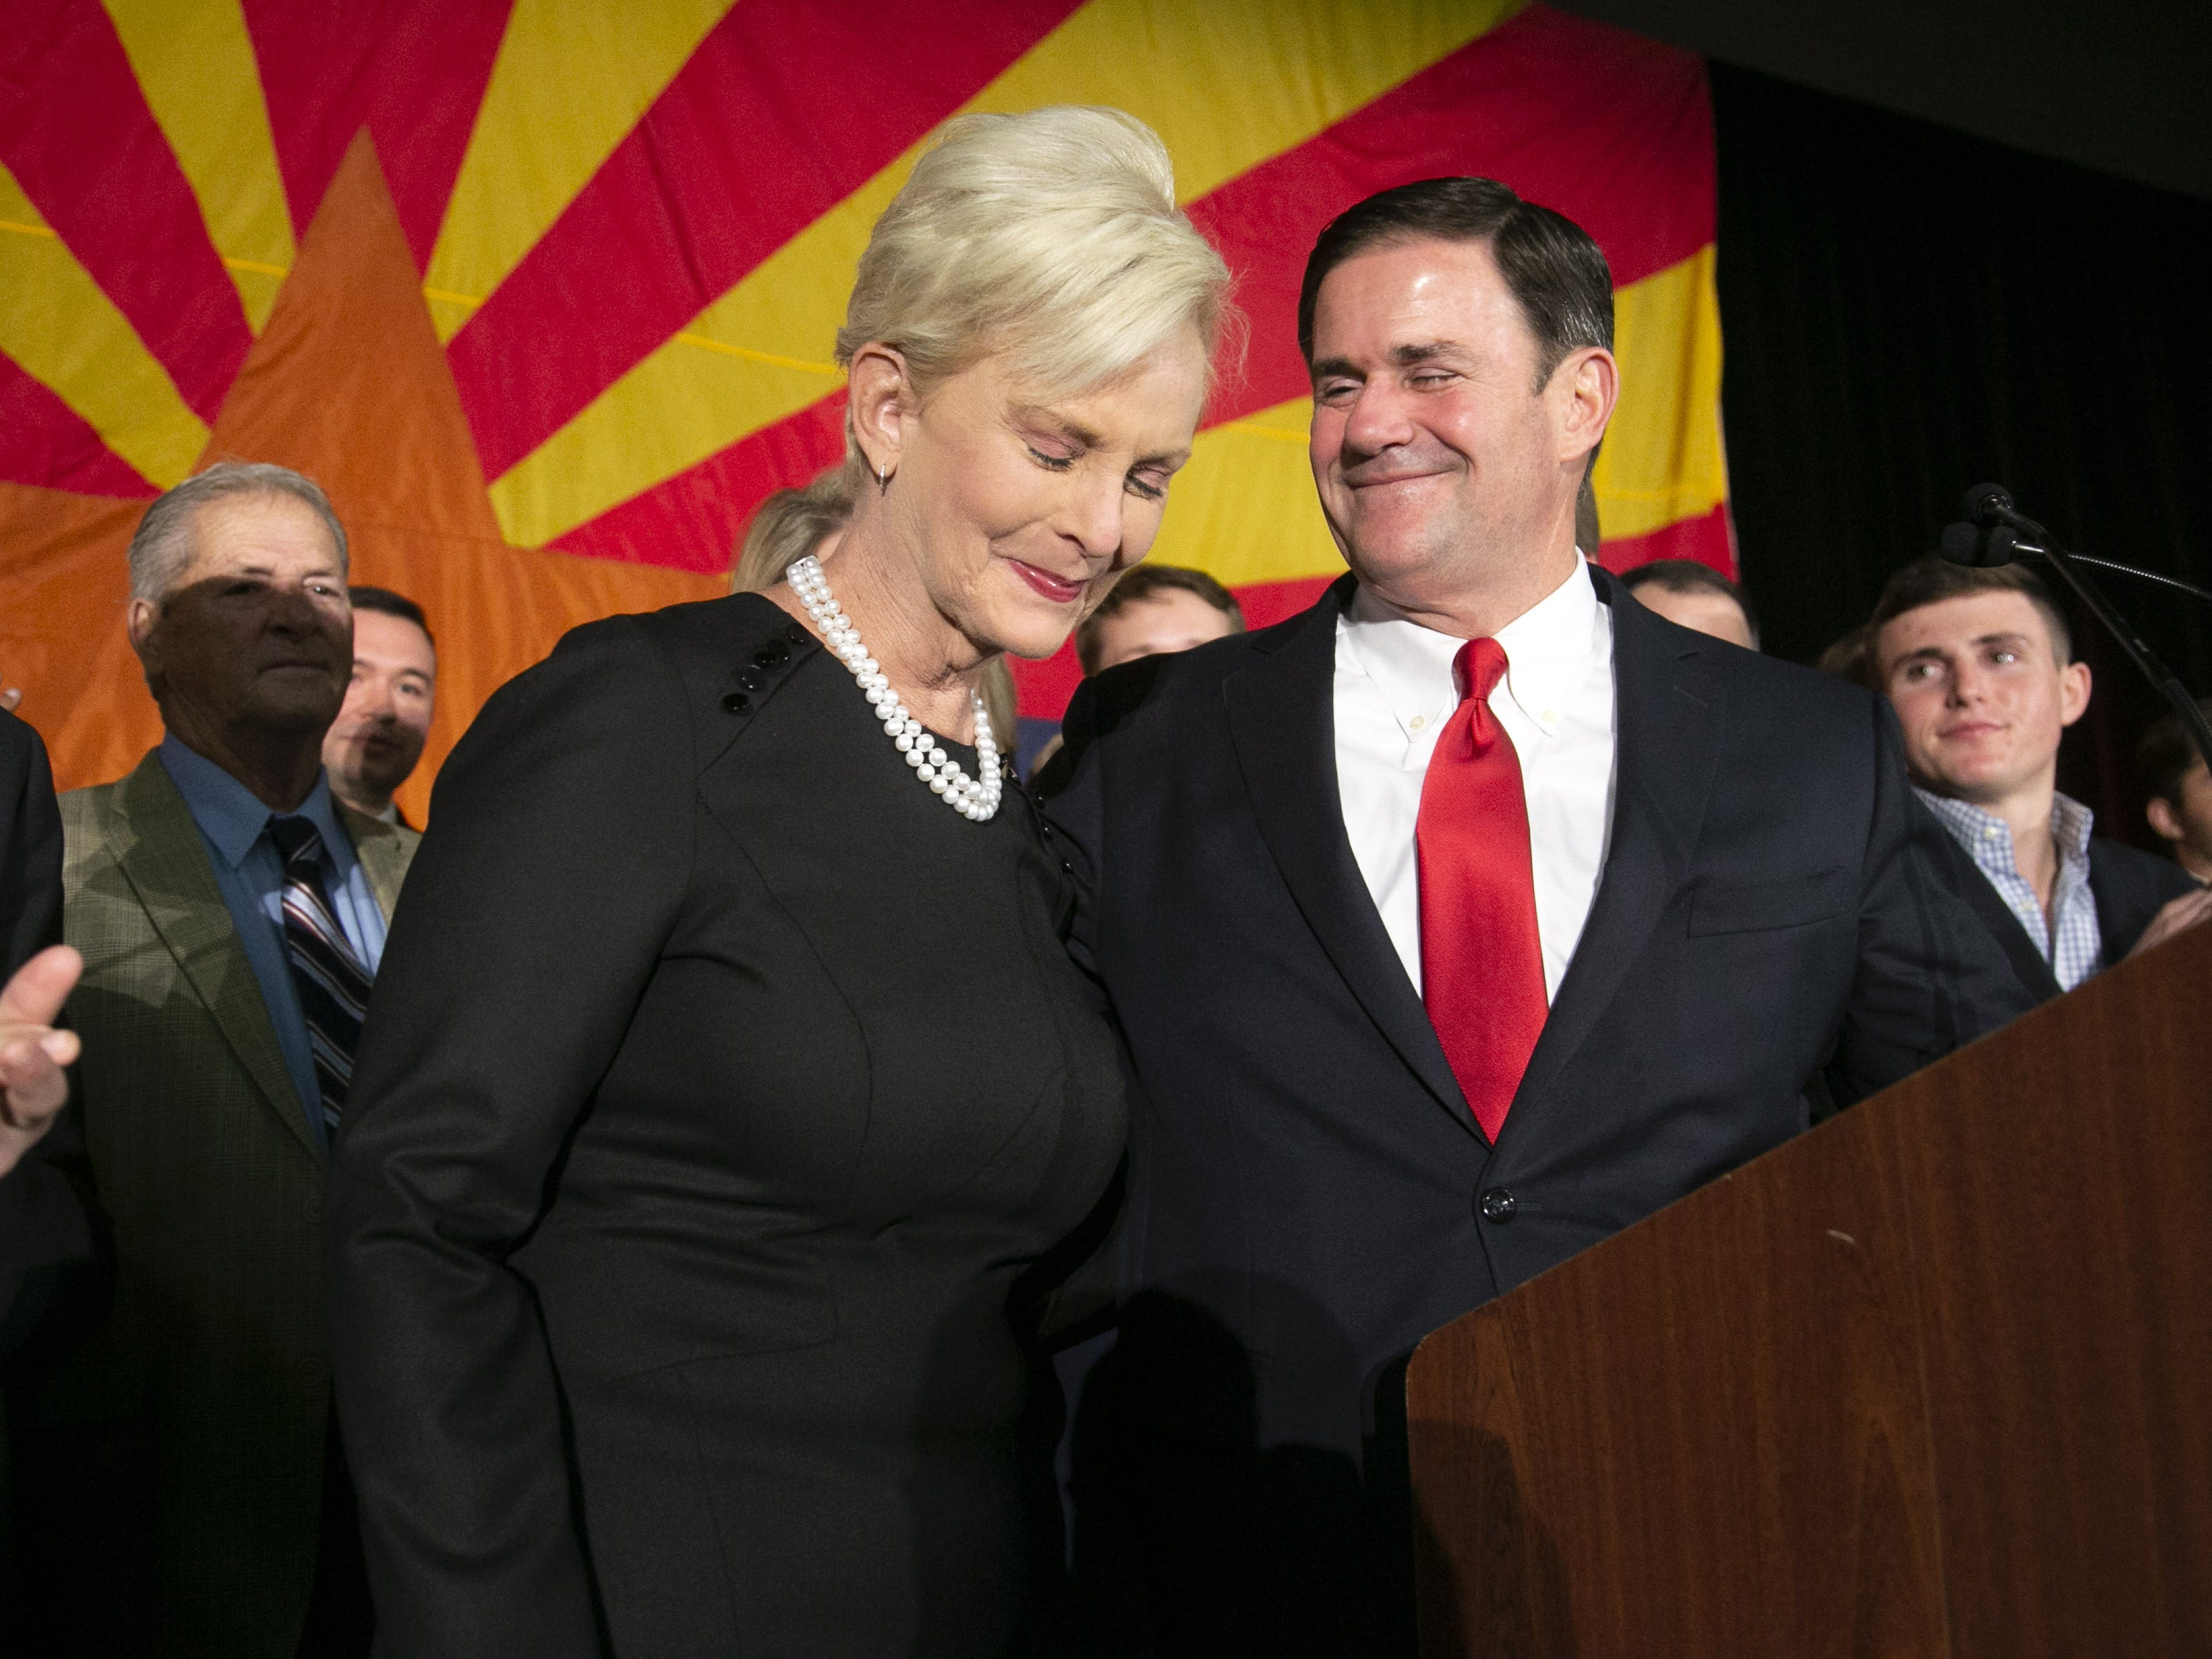 Gov. Doug Ducey speaks as Cindy McCain, the wife of the late Sen. John McCain looks on during the Republican watch party at the DoubleTree Resort in Scottsdale on Nov. 6, 2018.